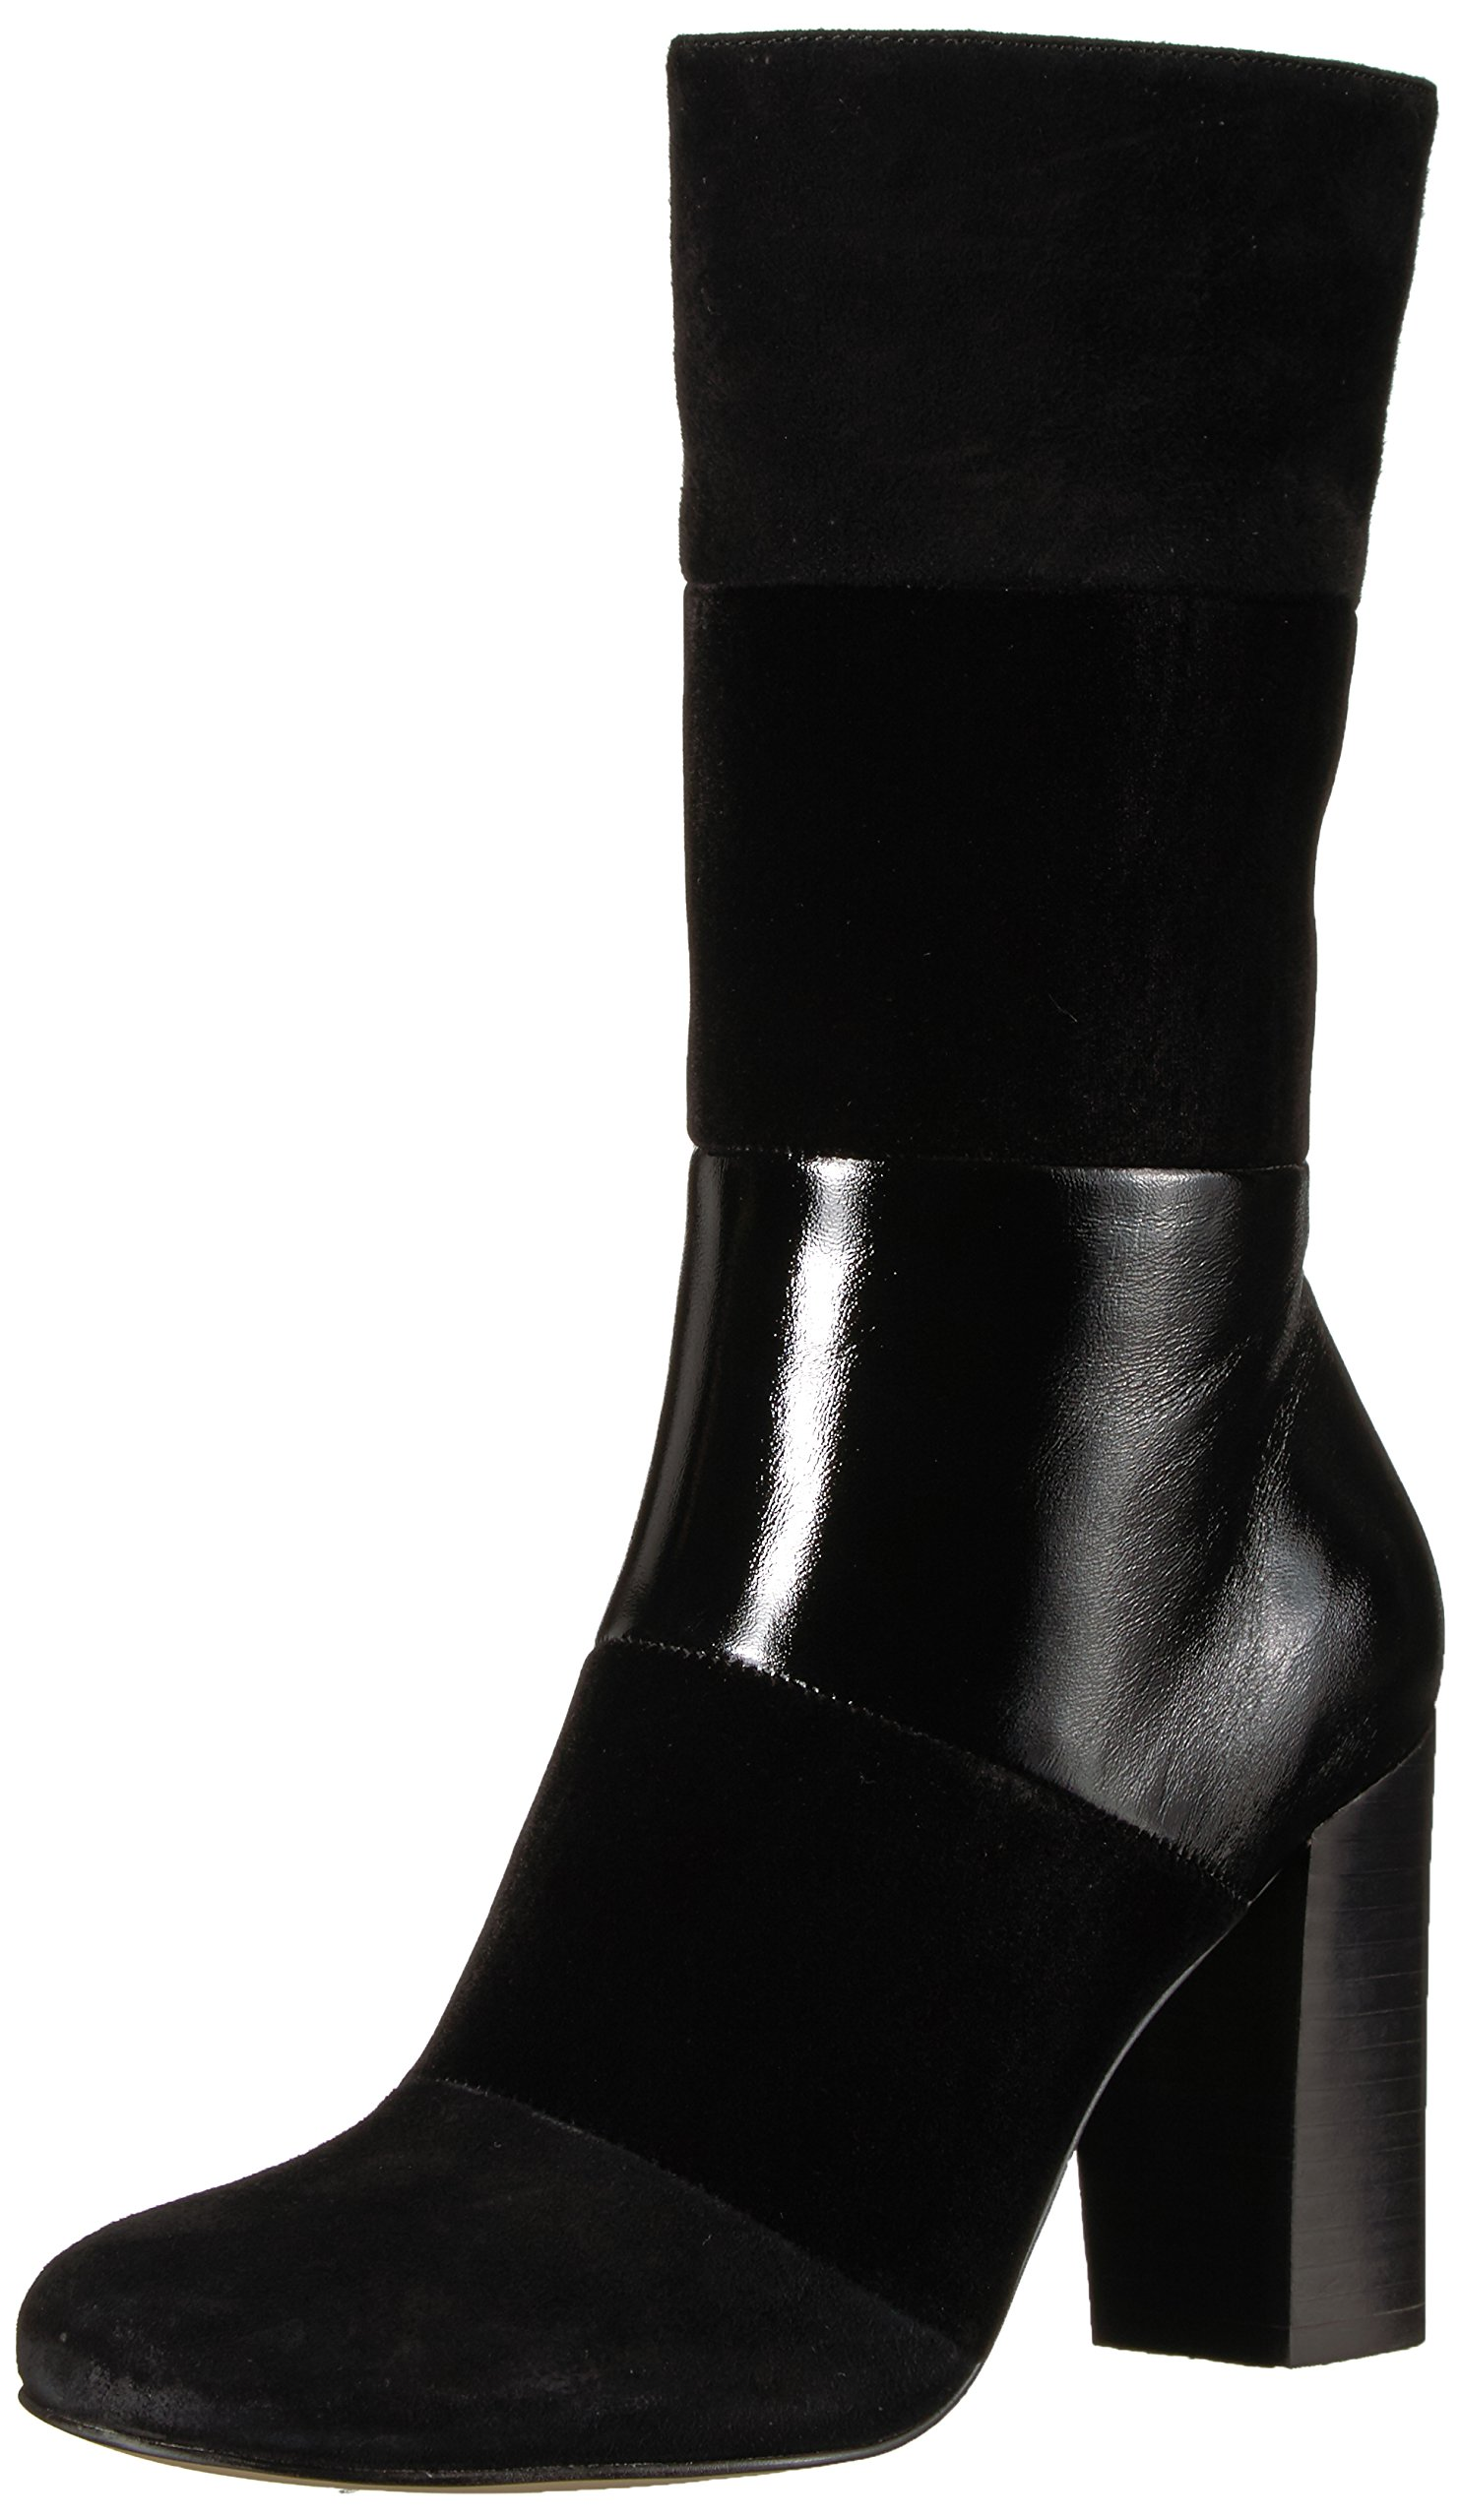 The Fix Women's Skylar Mid-Shaft Material-Block Boot, Black, 8.5 B US by The Fix (Image #1)